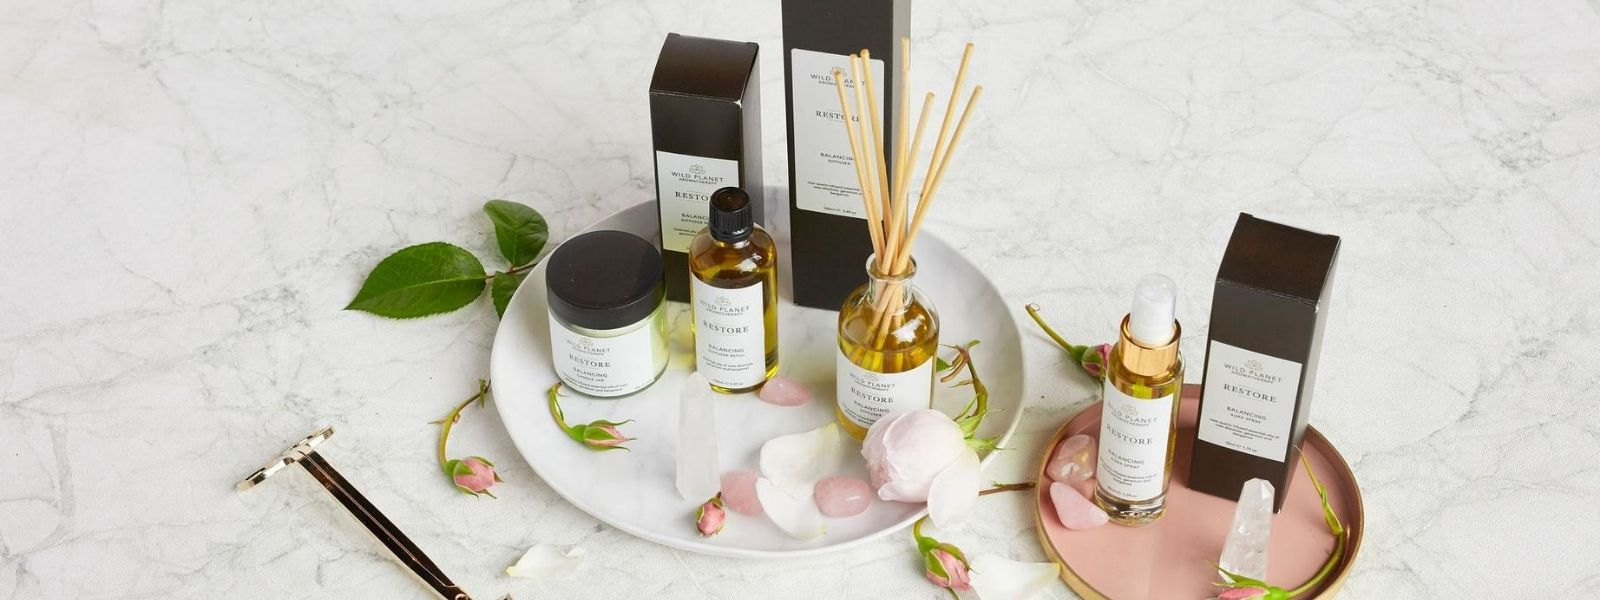 Restore reed diffuser, aura spray and candle jar by Wild Planet Aromatherapy on pink tray with fresh rose buds and rose quartz crystals